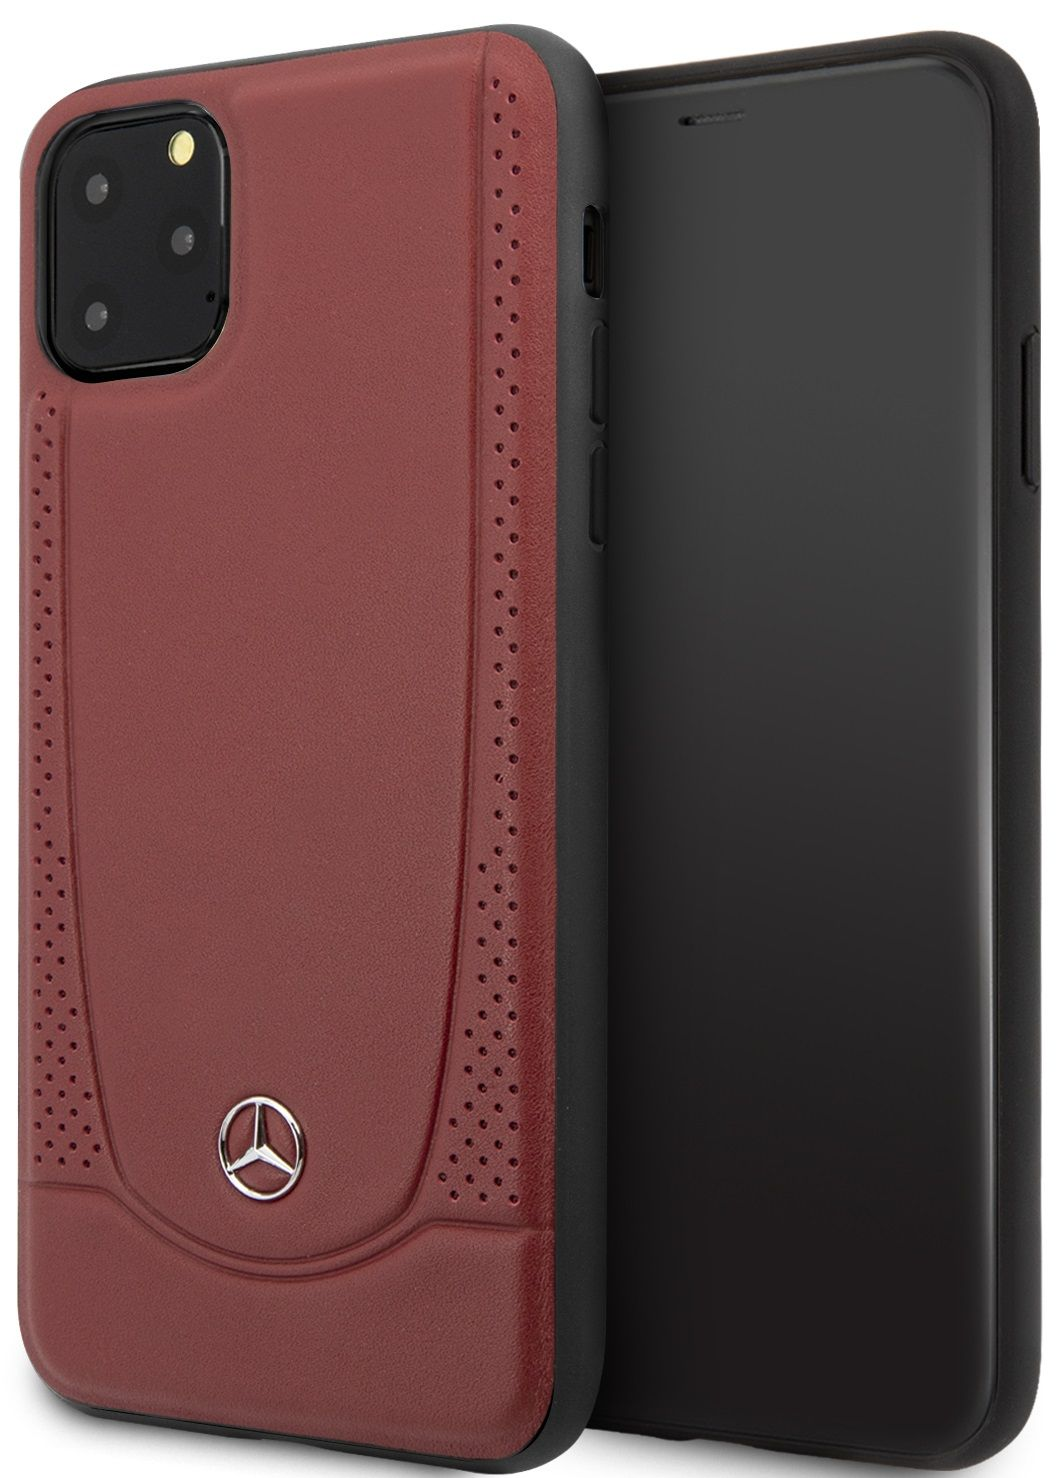 Чехол Mercedes для iPhone 11 Pro Max Urban Smooth/perforated Hard Leather Red, картинка 1